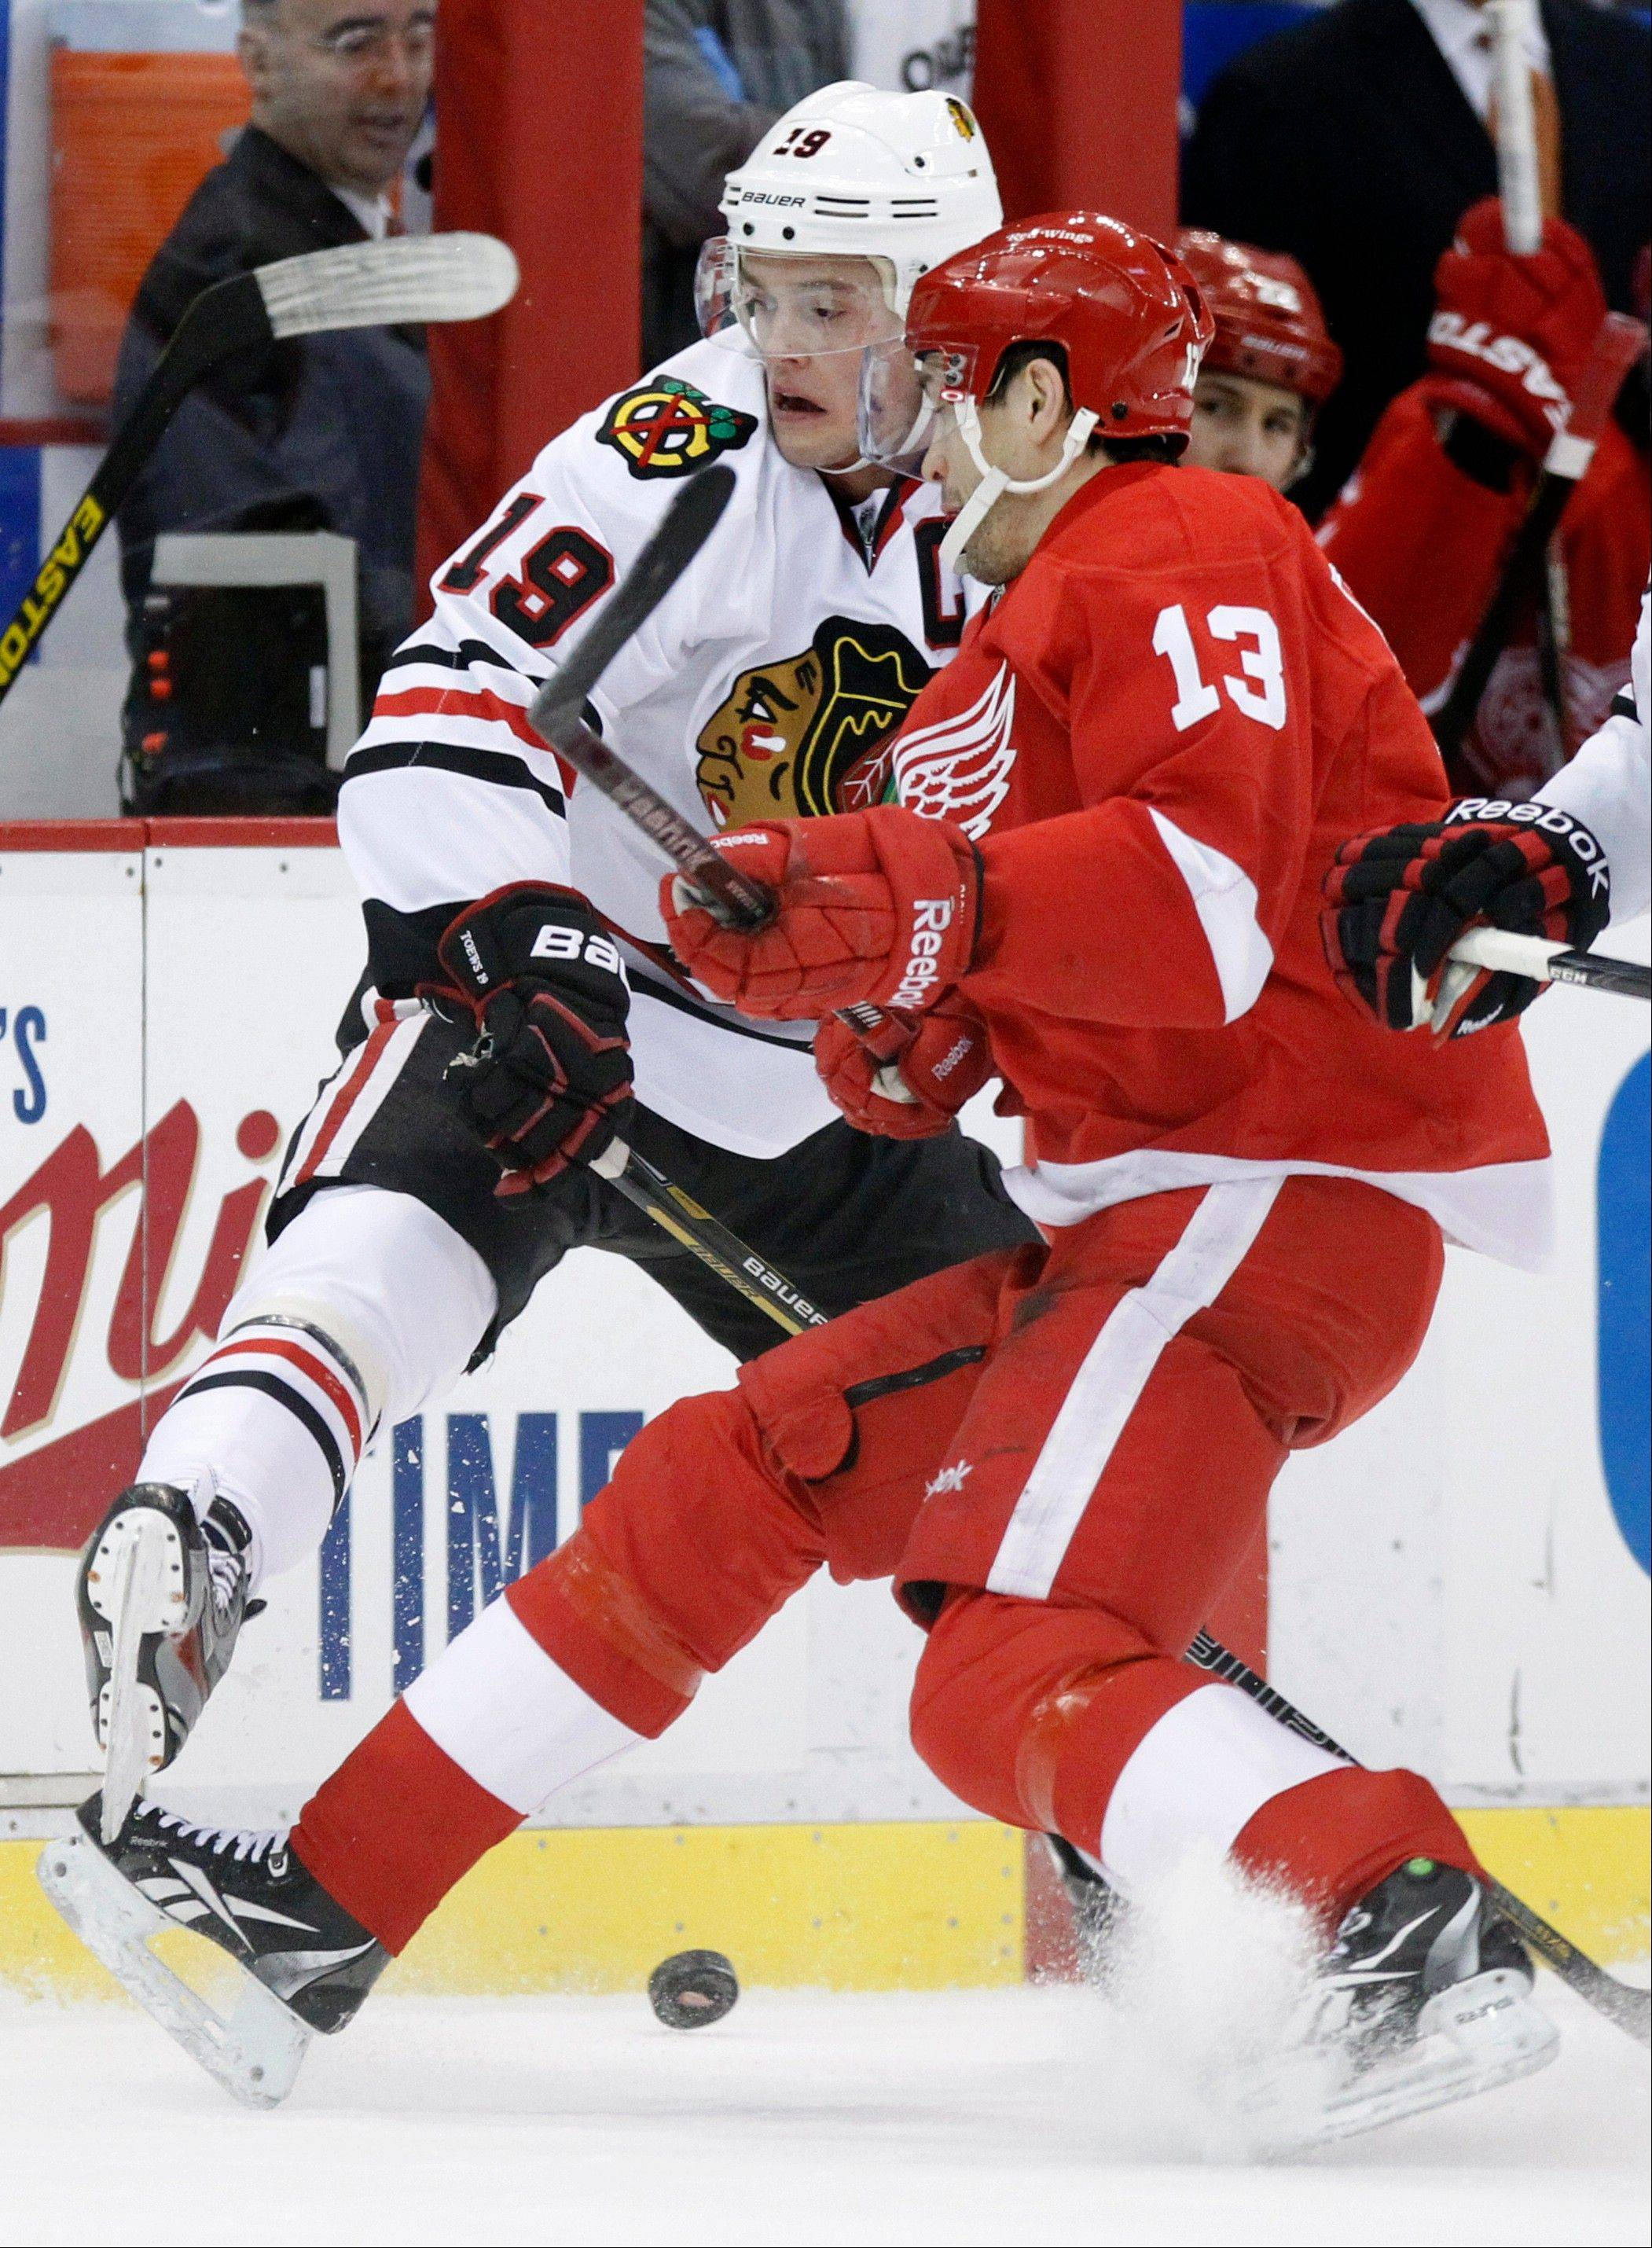 The NHL can thank captain Jonathan Toews and the Blackhawks for taking the focus off the lockout that wiped out almost half of the season.